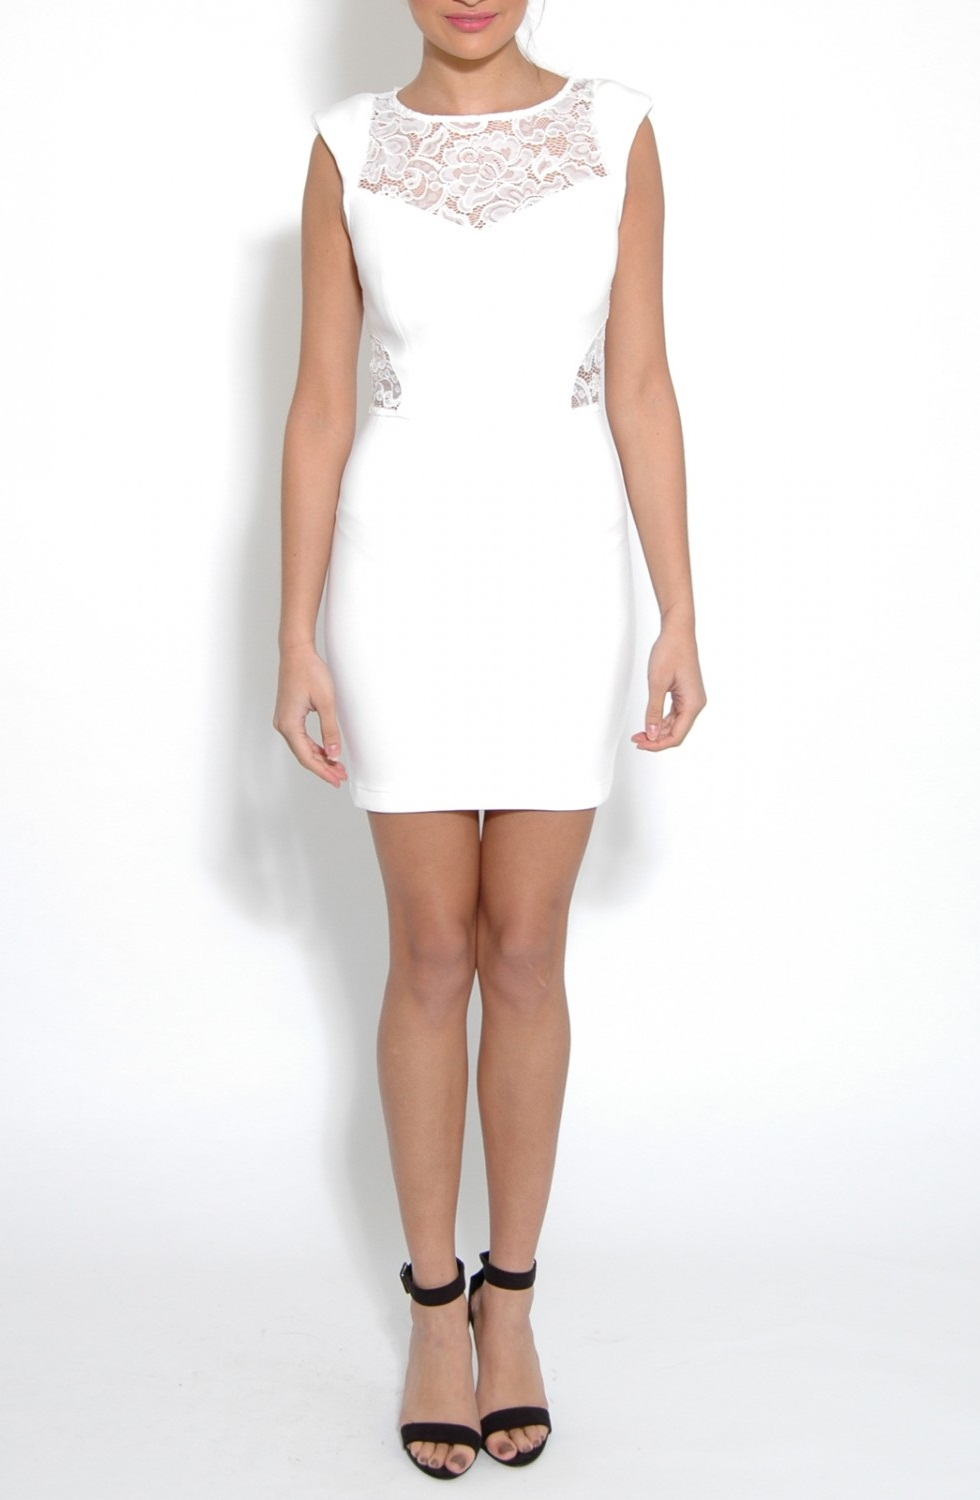 Dress different types mesomorph on bodycon body are